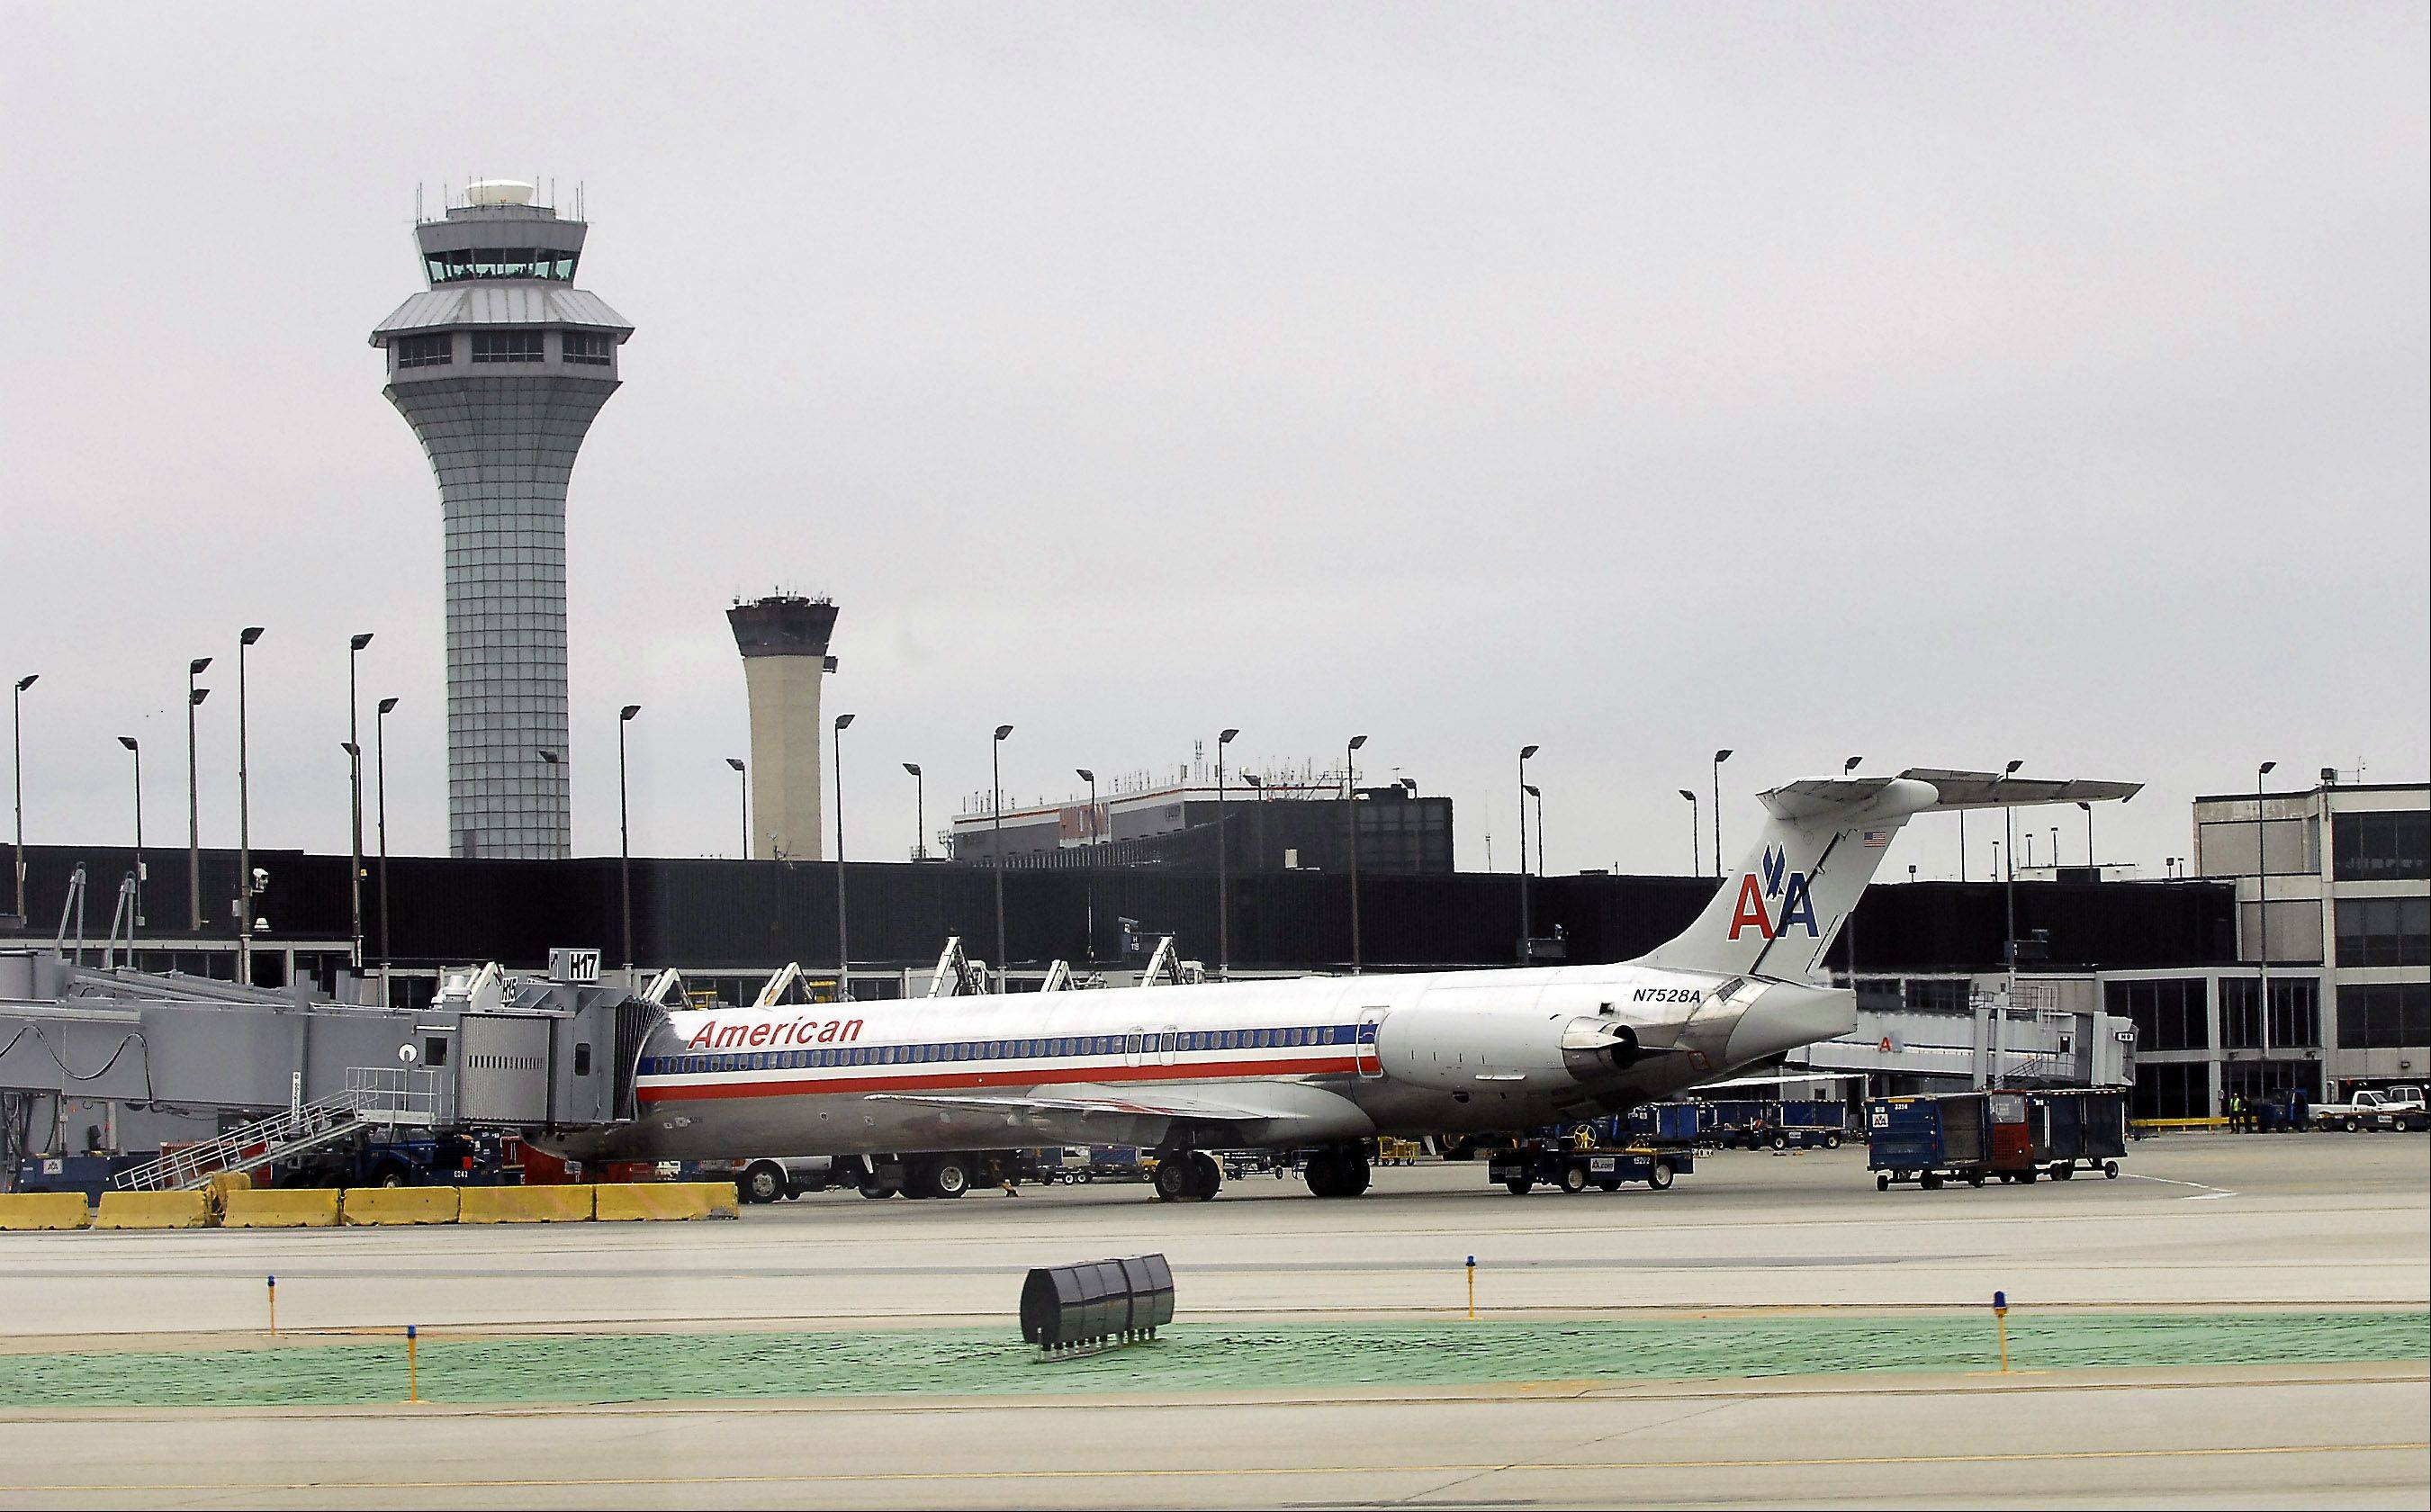 Bad weather on the East Coast is affecting air traffic at O�Hare.